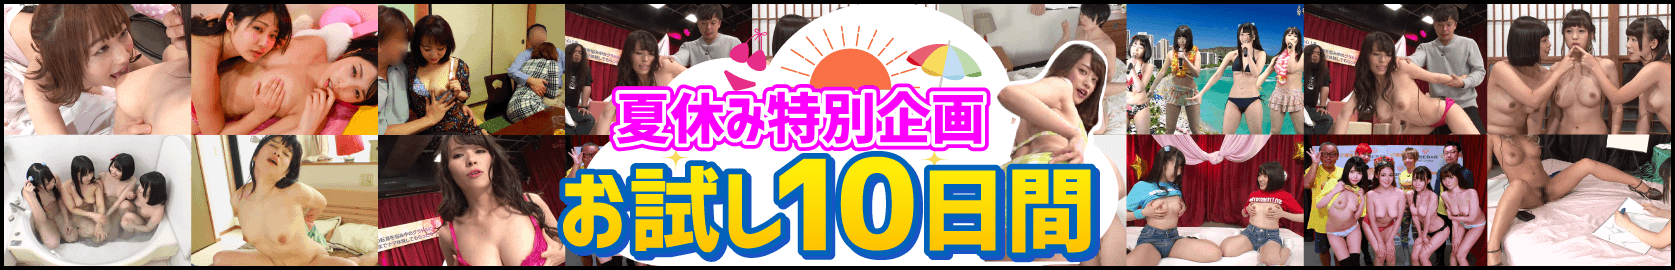 LIVE+VOD+見逃し配信10日間お試しキャンペーン201907!